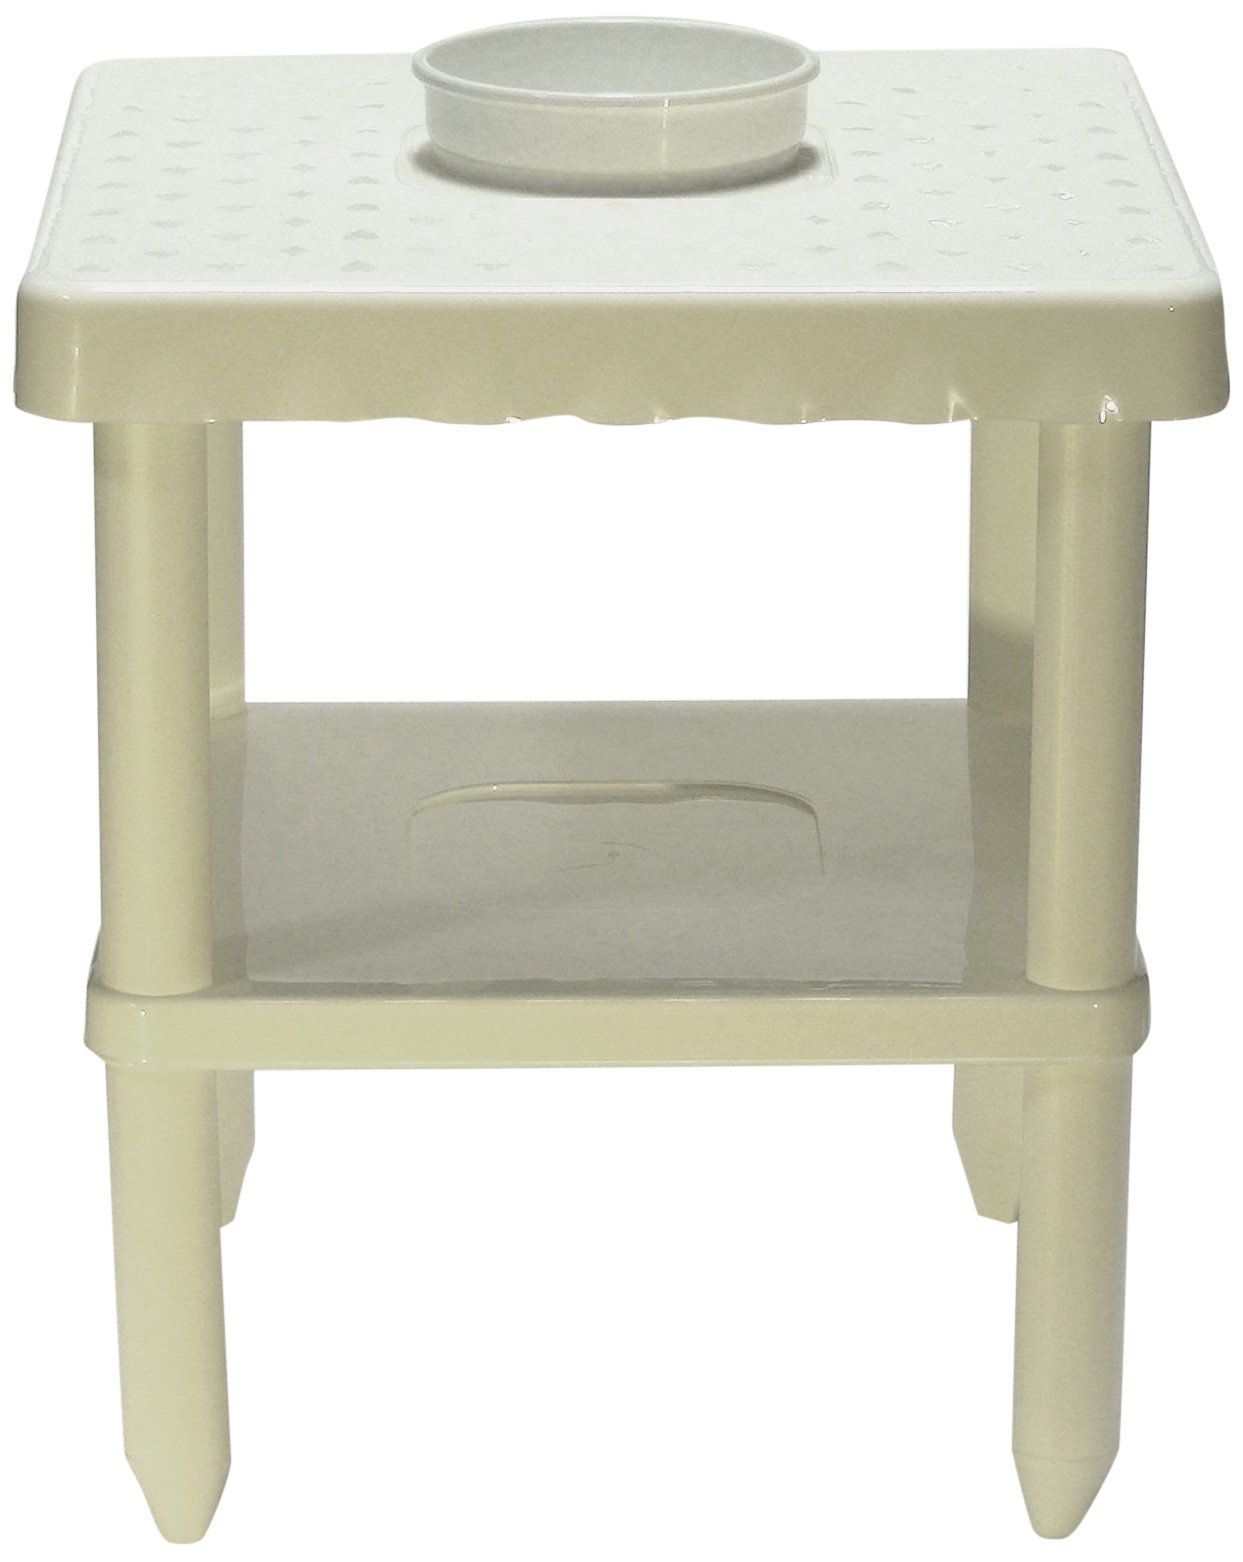 Sana Enterprises Our Portable Two Shelf Table Includes A Built-in Bowl and is Great for Beach, White